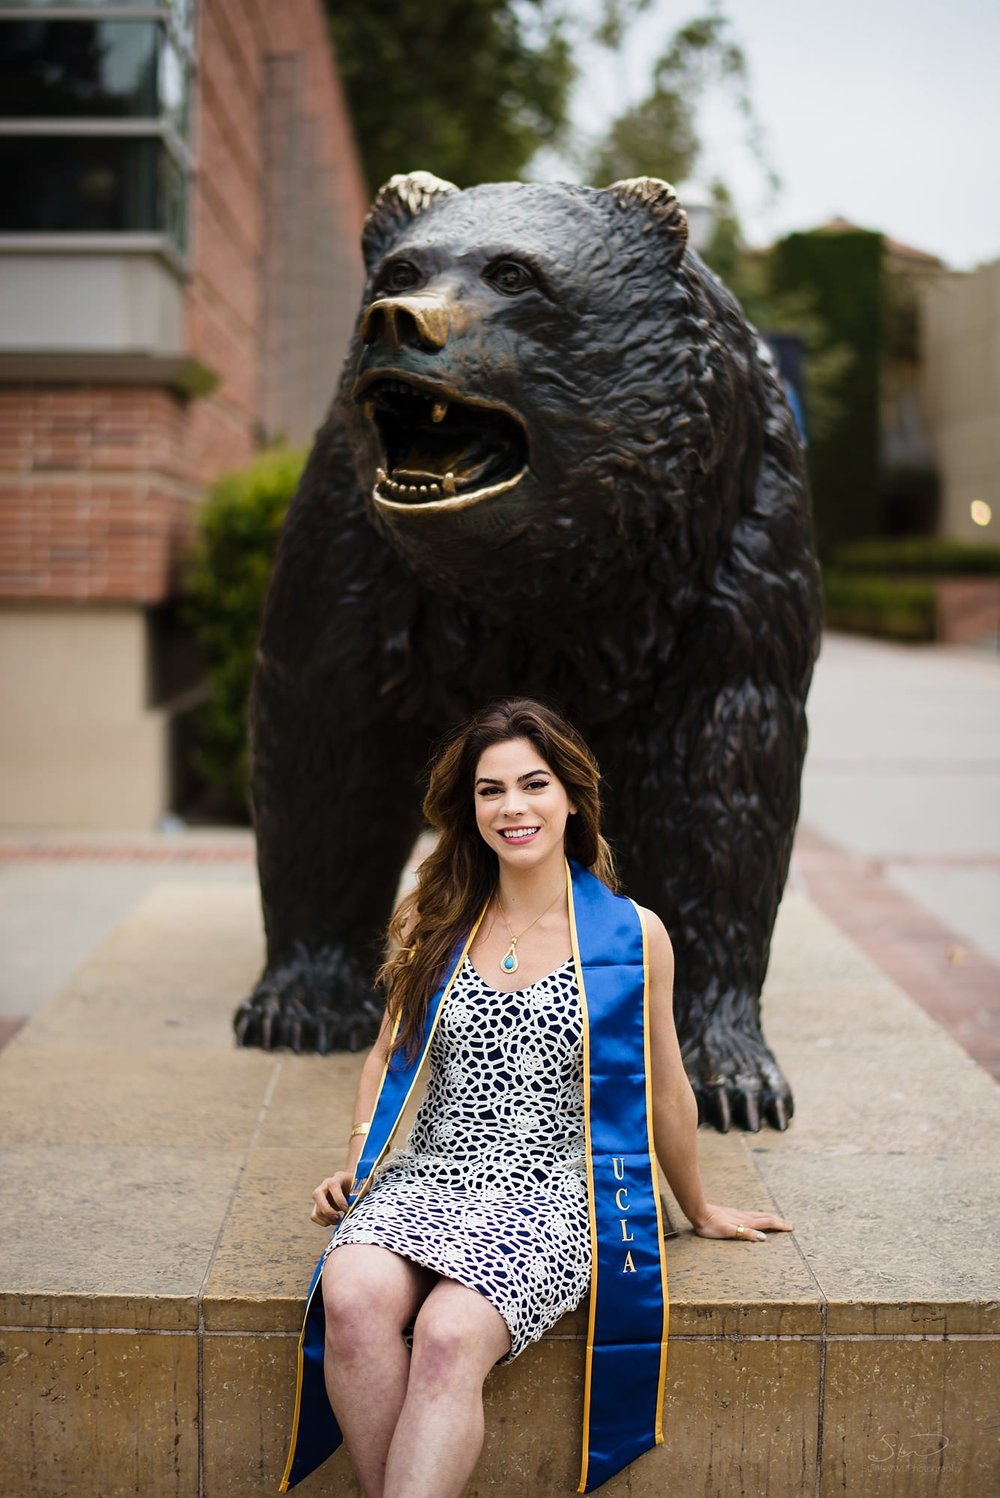 beautiful graduation senior portrait of a girl smiling in front of the bruin bear at ucla in los angeles